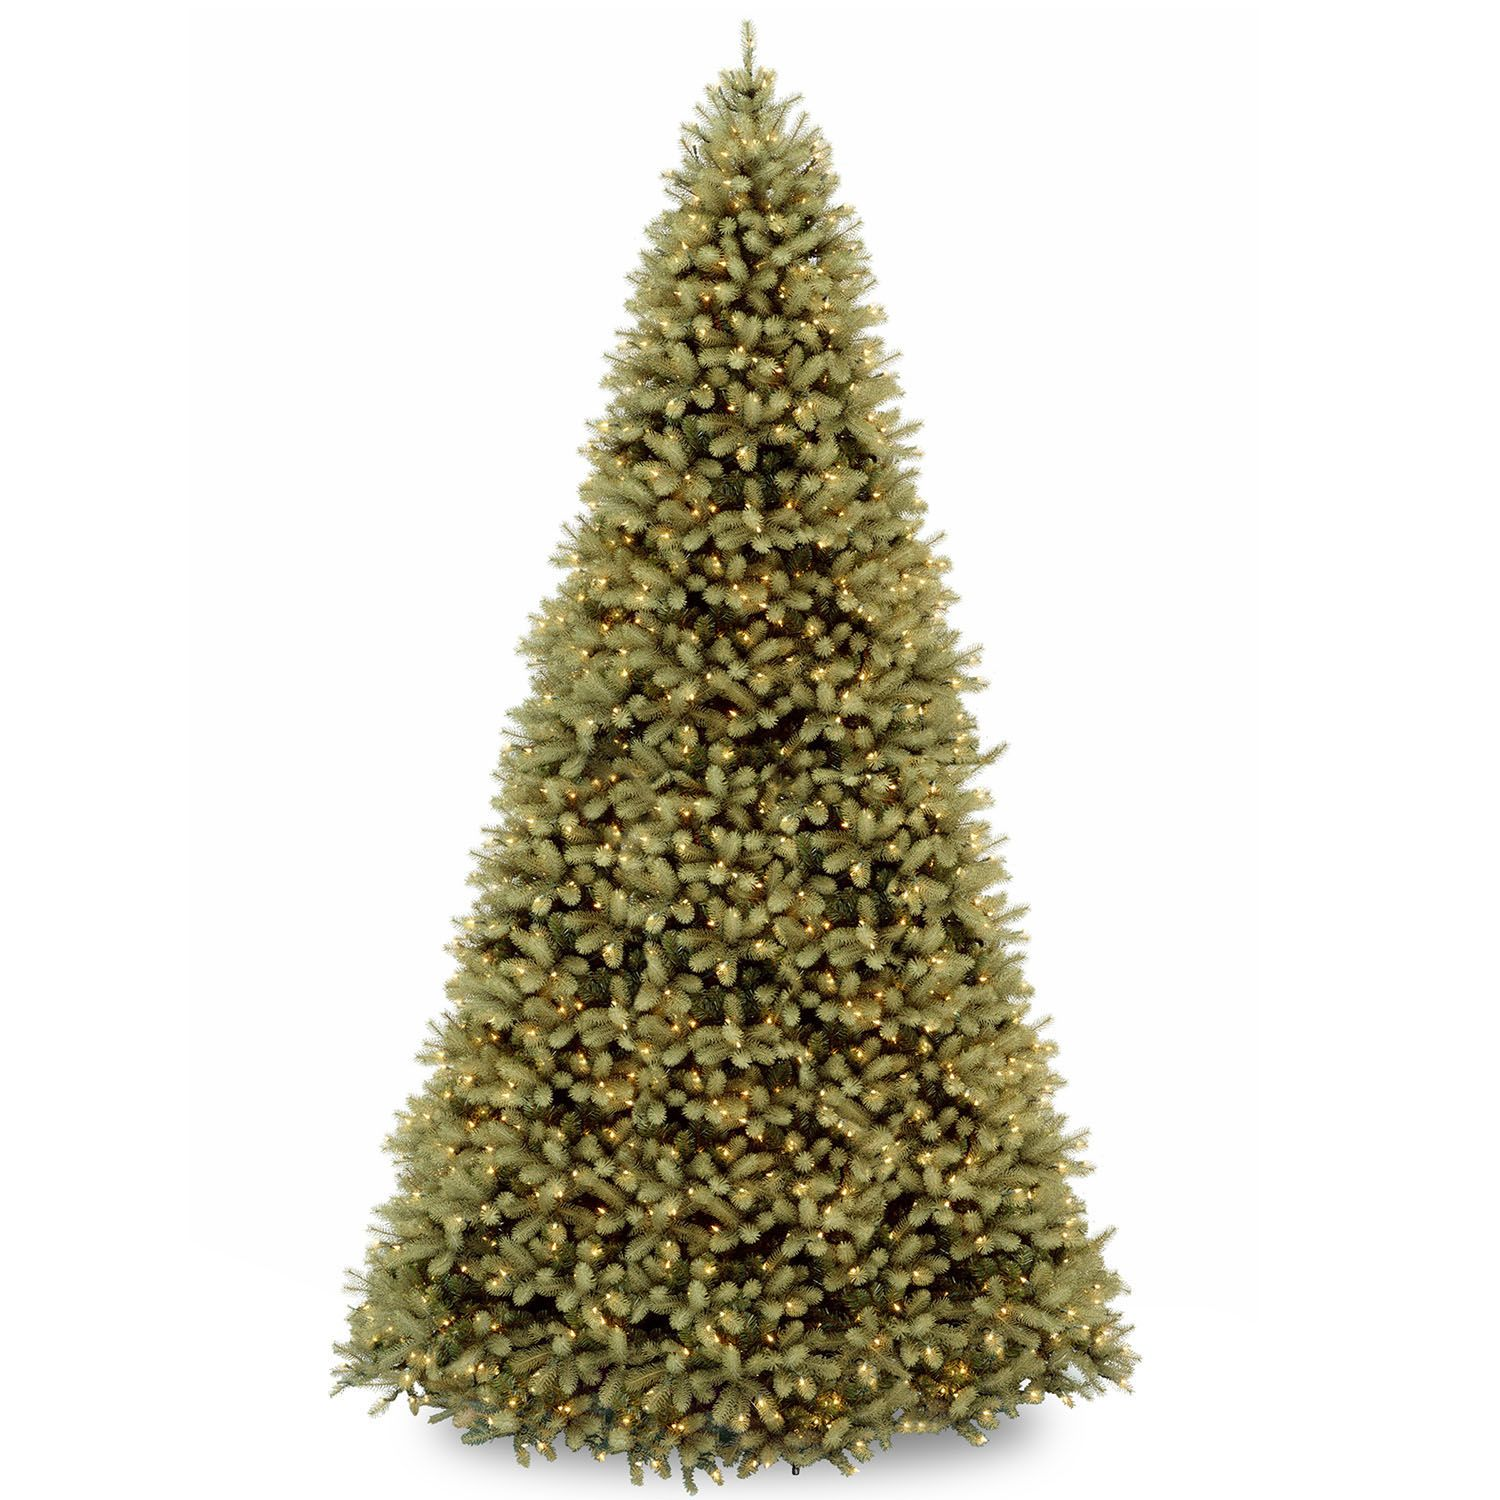 10 Reasons To Use Artificial Christmas Trees In Your Office Fir Christmas Tree Douglas Fir Christmas Tree Pre Lit Christmas Tree